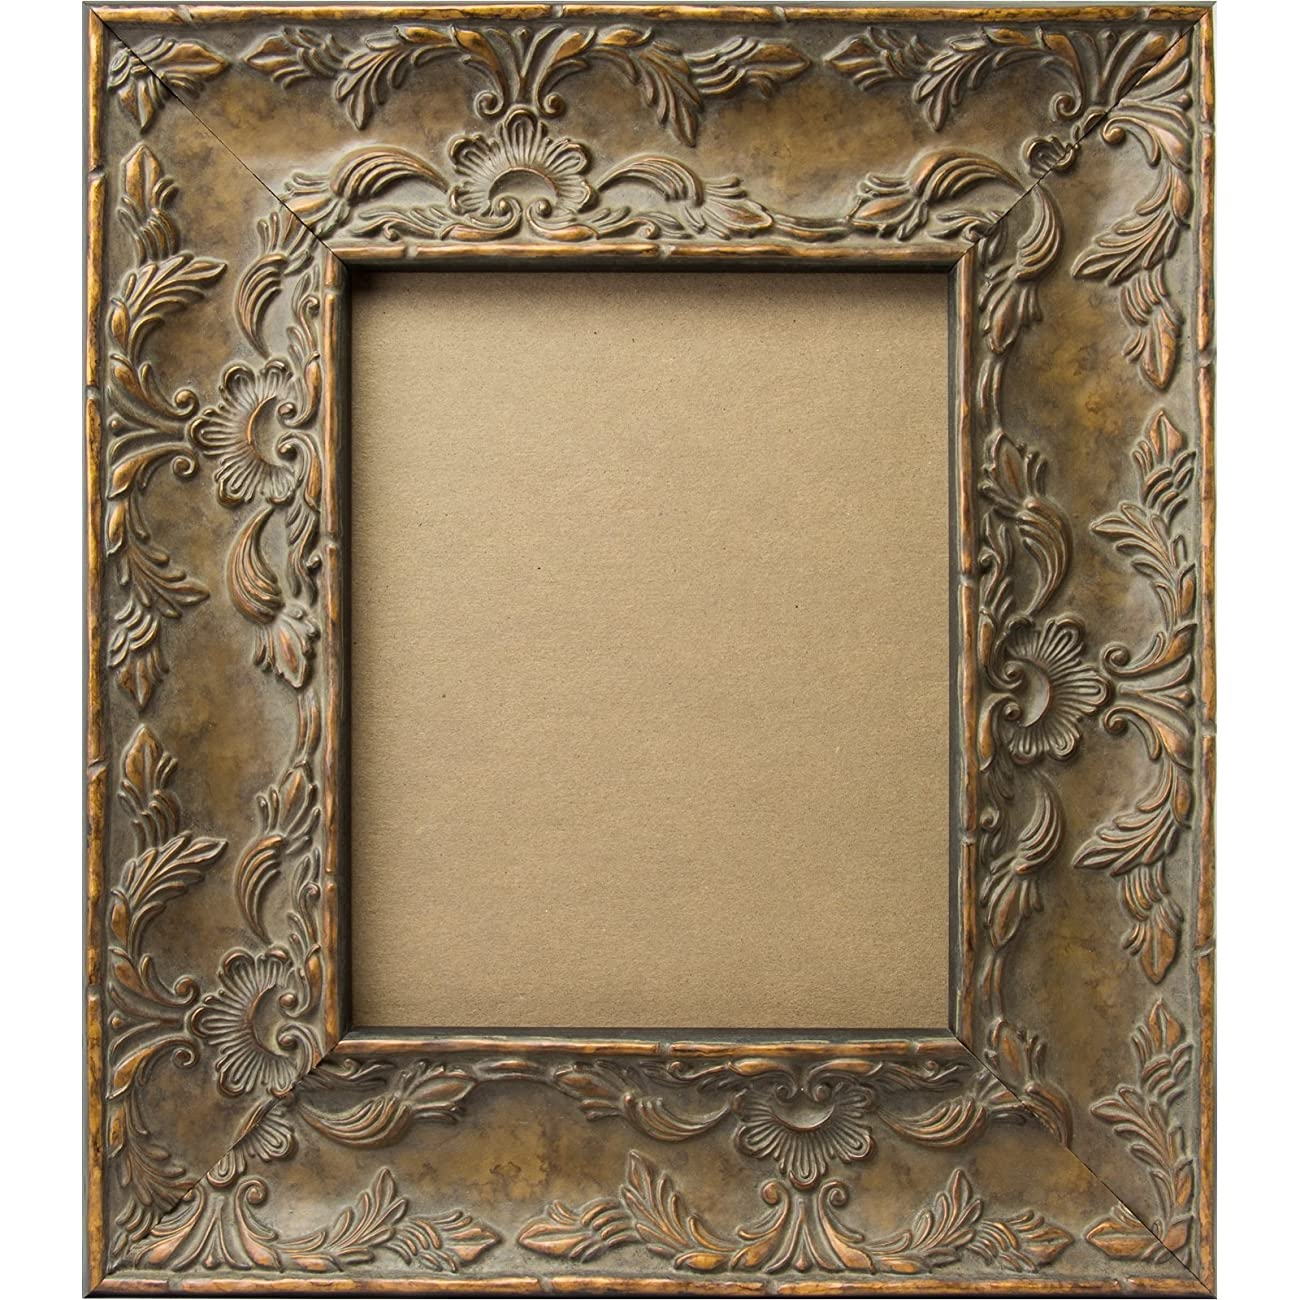 Craig Frames 10723 8 by 10-Inch Picture Frame, Solid Wood Core, Embossed Leaf Finish, 3.25-Inch Wide, Antique Gold 1